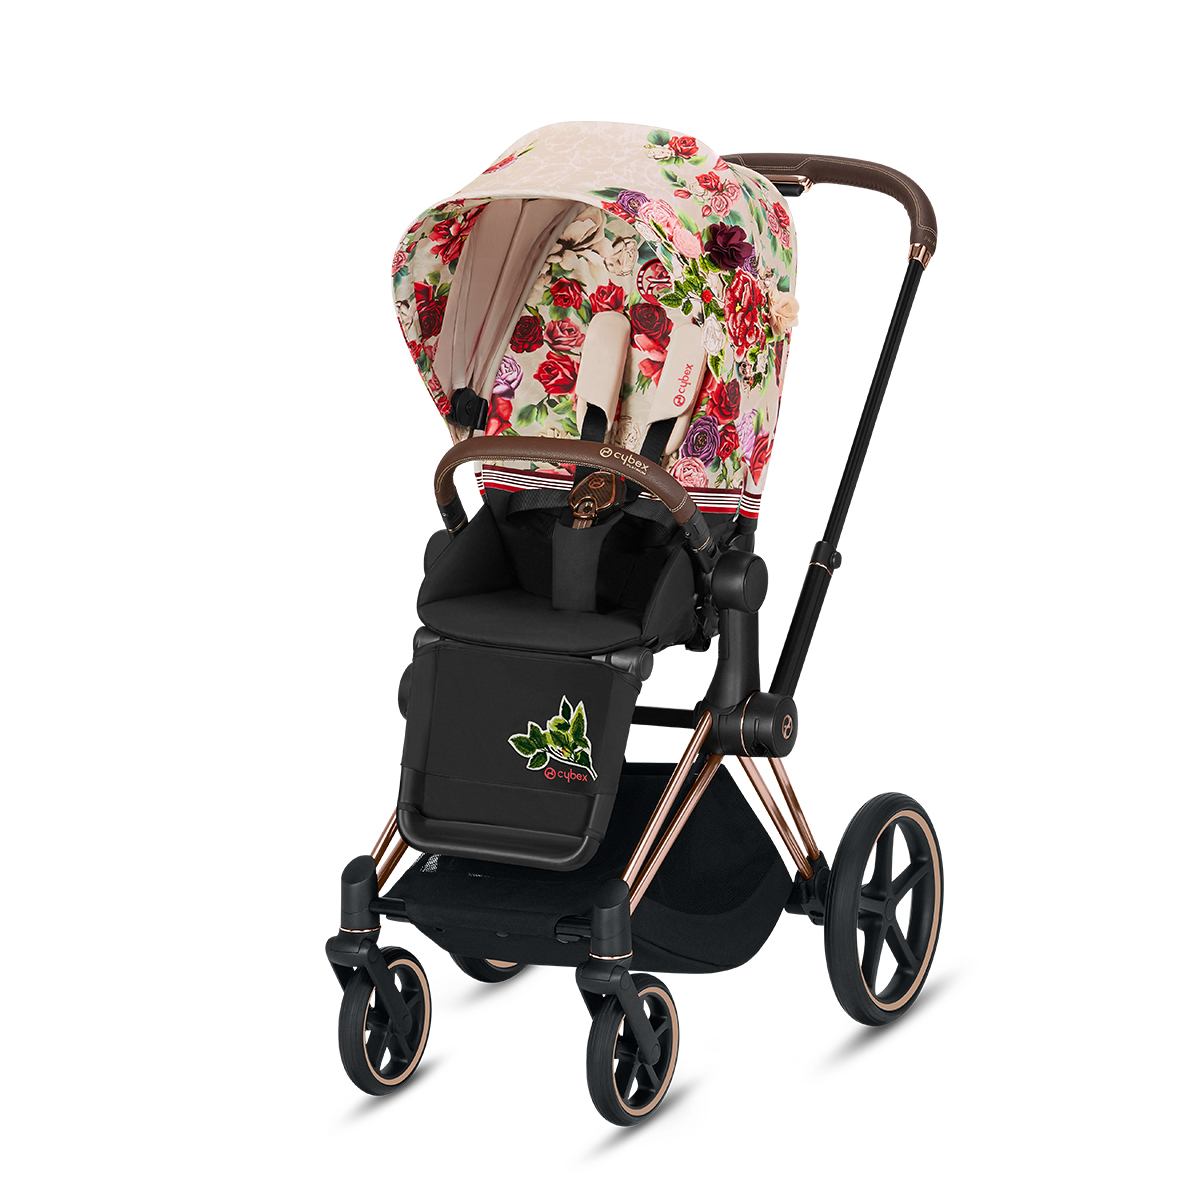 Cybex Priam Lux Stroller in Light Spring Blossom